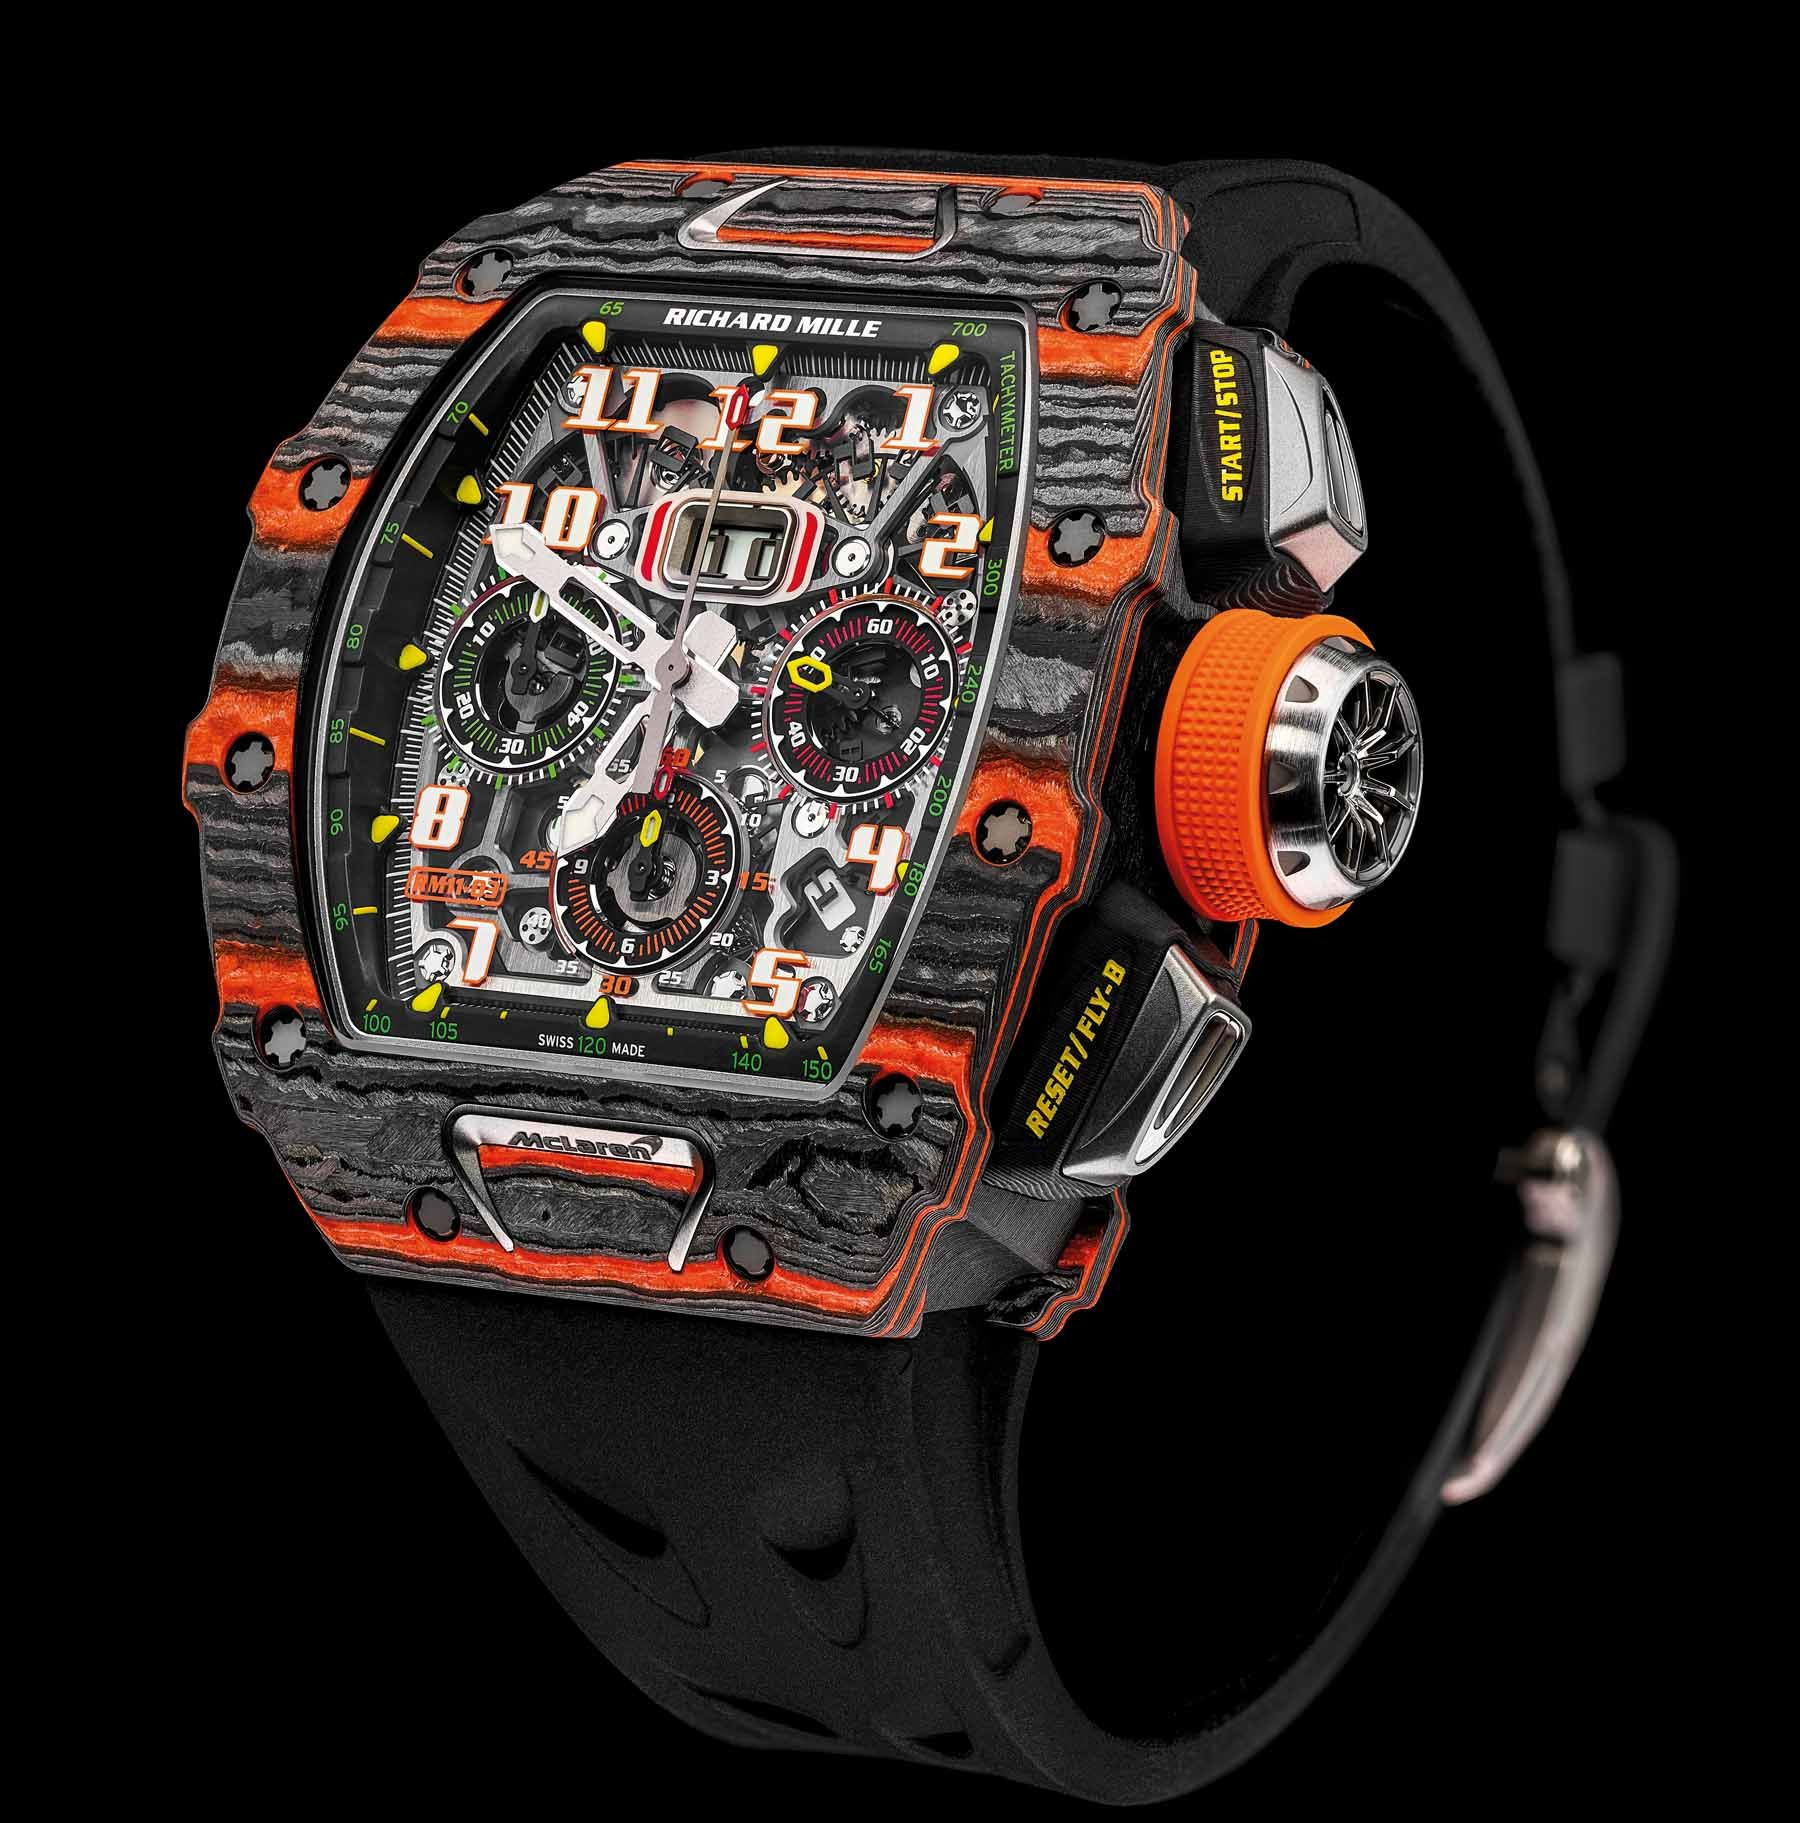 Richard Mille Teams Up With McLaren For The RM 11-03